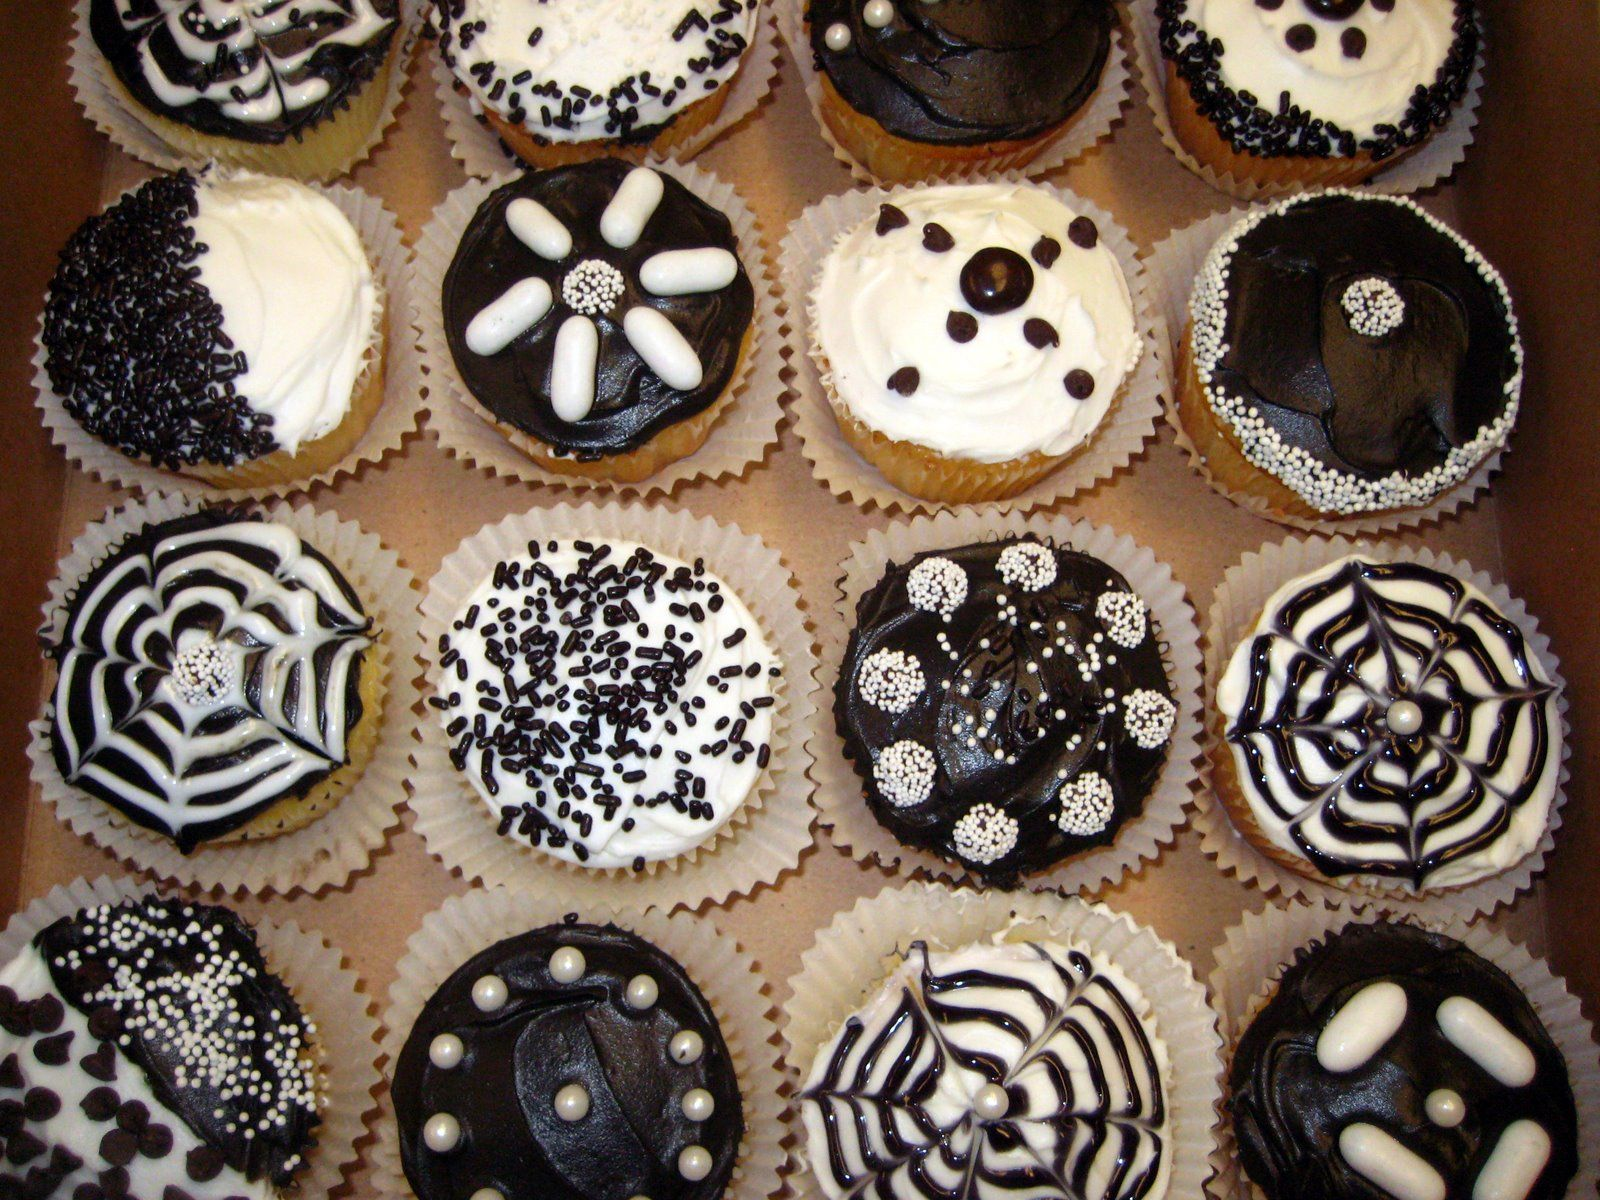 living at home: more cupcakes